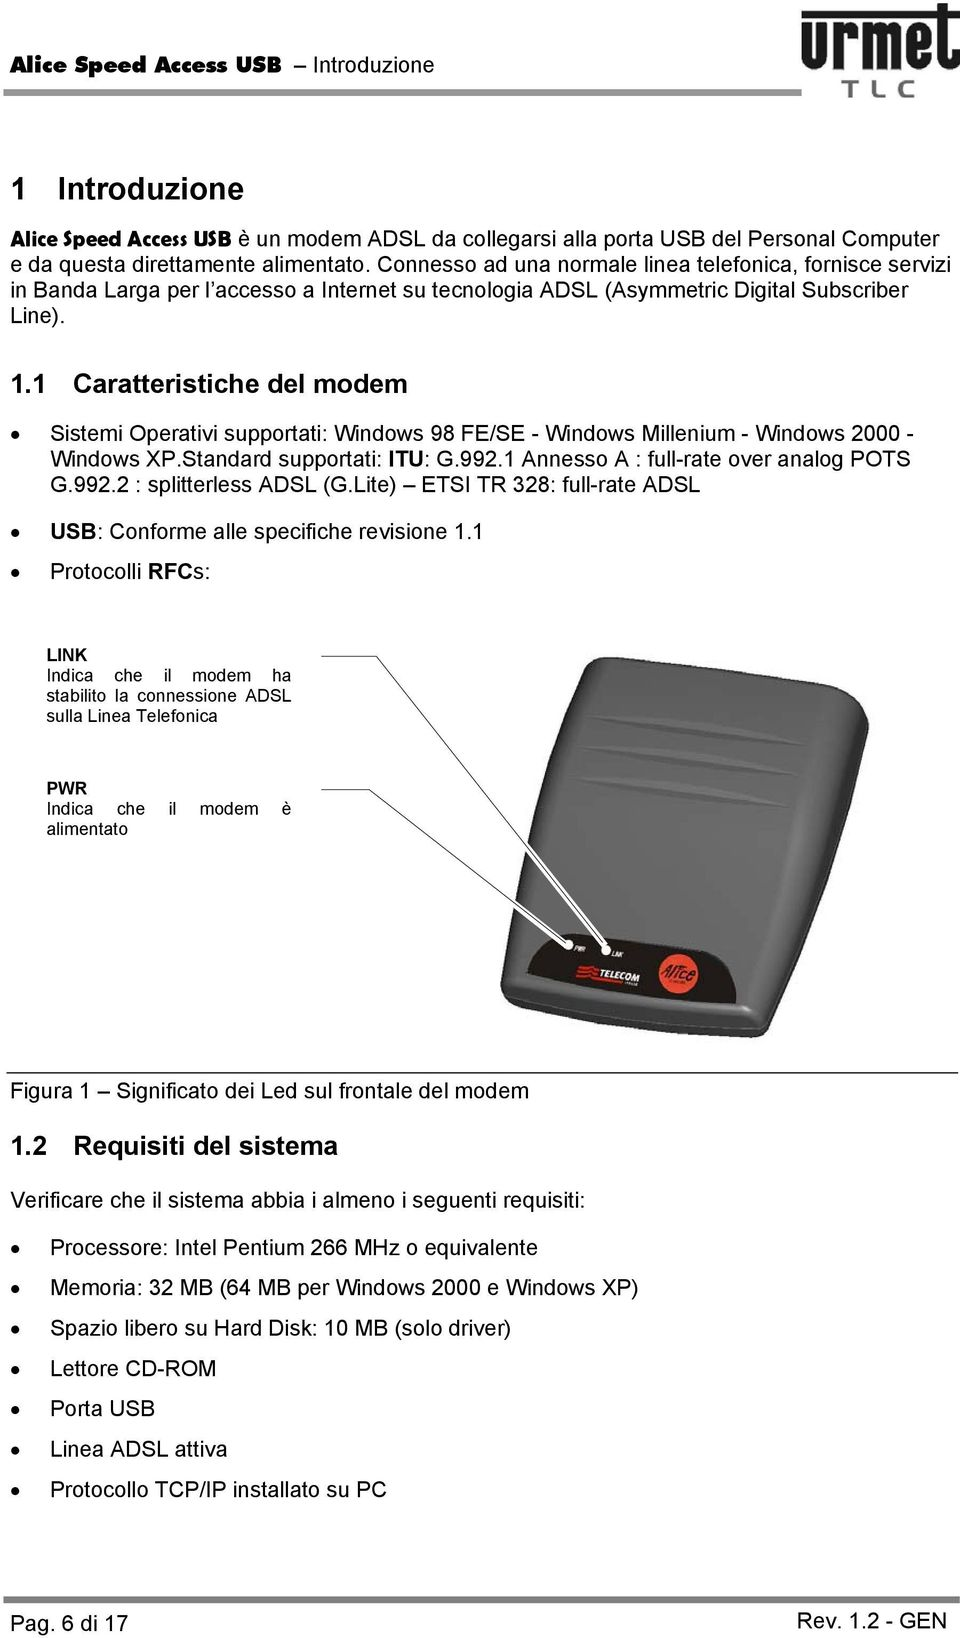 1 Caratteristiche del modem Sistemi Operativi supportati: Windows 98 FE/SE - Windows Millenium - Windows 2000 - Windows XP.Standard supportati: ITU: G.992.1 Annesso A : full-rate over analog POTS G.